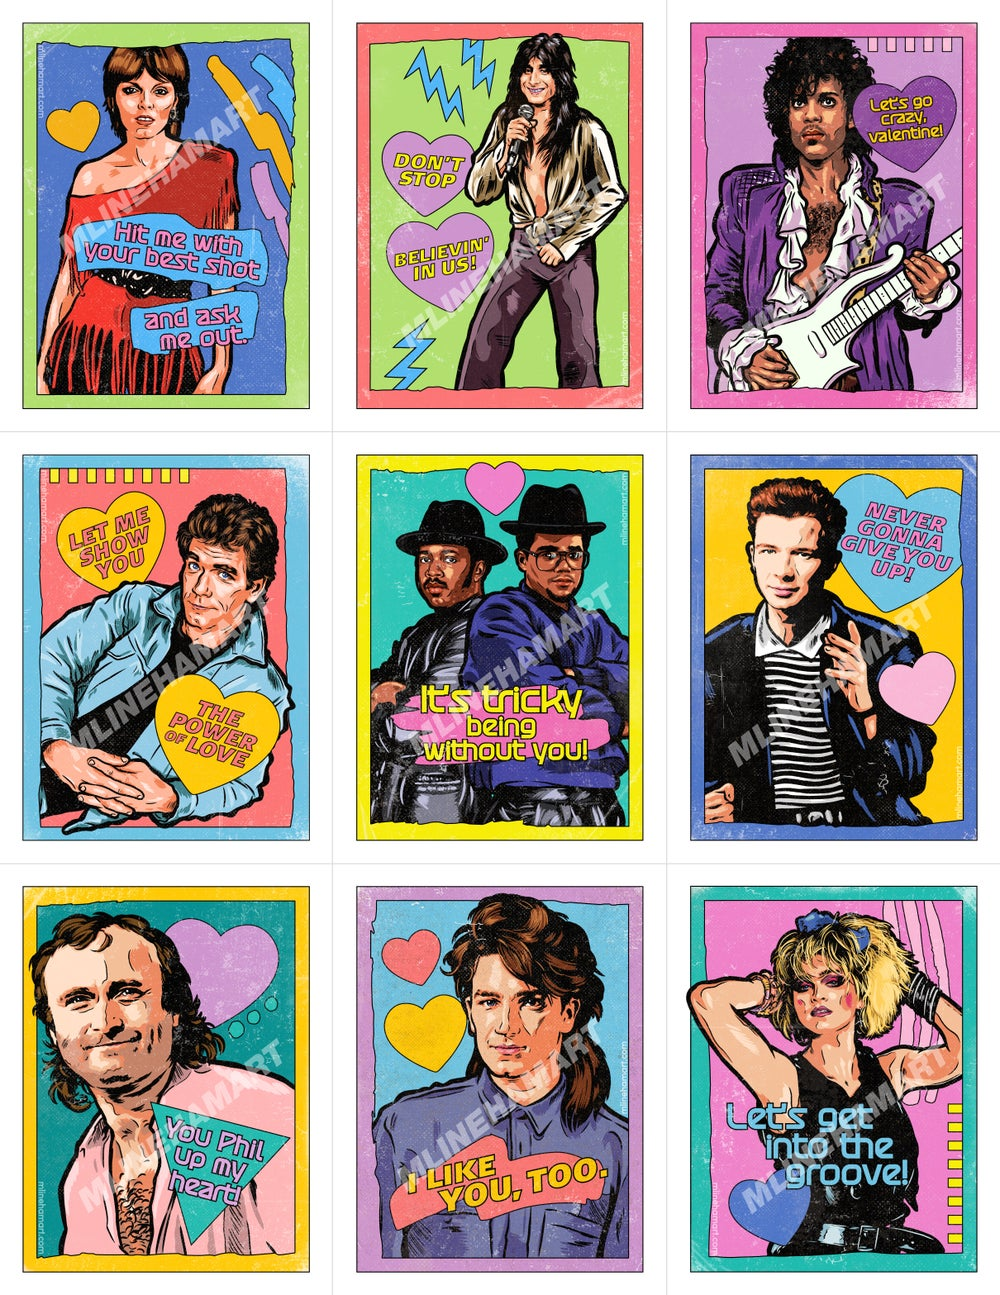 80's Music Valentine's Day Card Pack (2021)